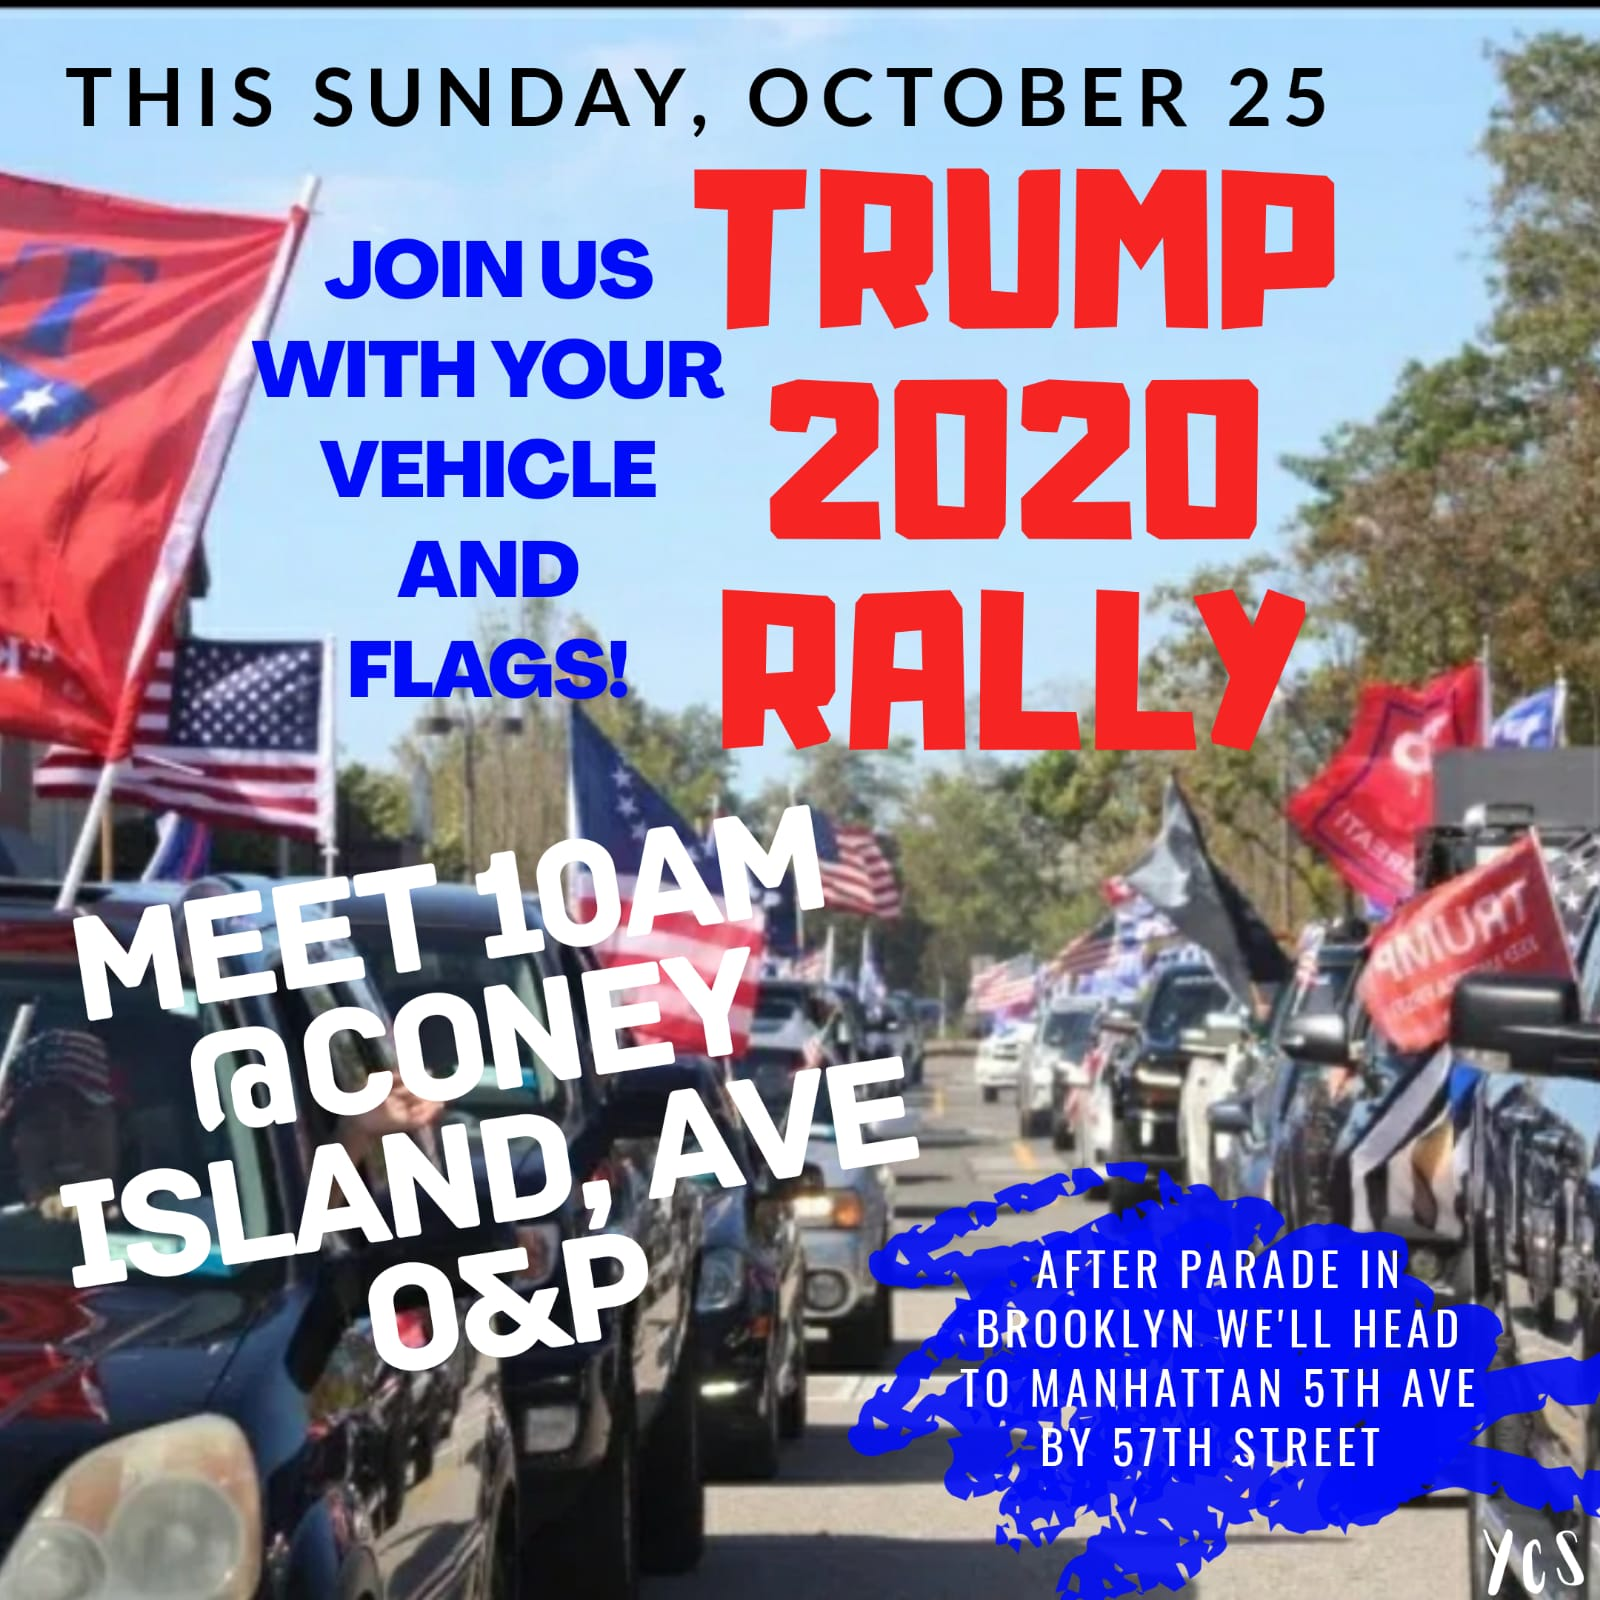 Car Rally and Parade for President Trump Starts on Sunday at 10am on Coney Island Ave